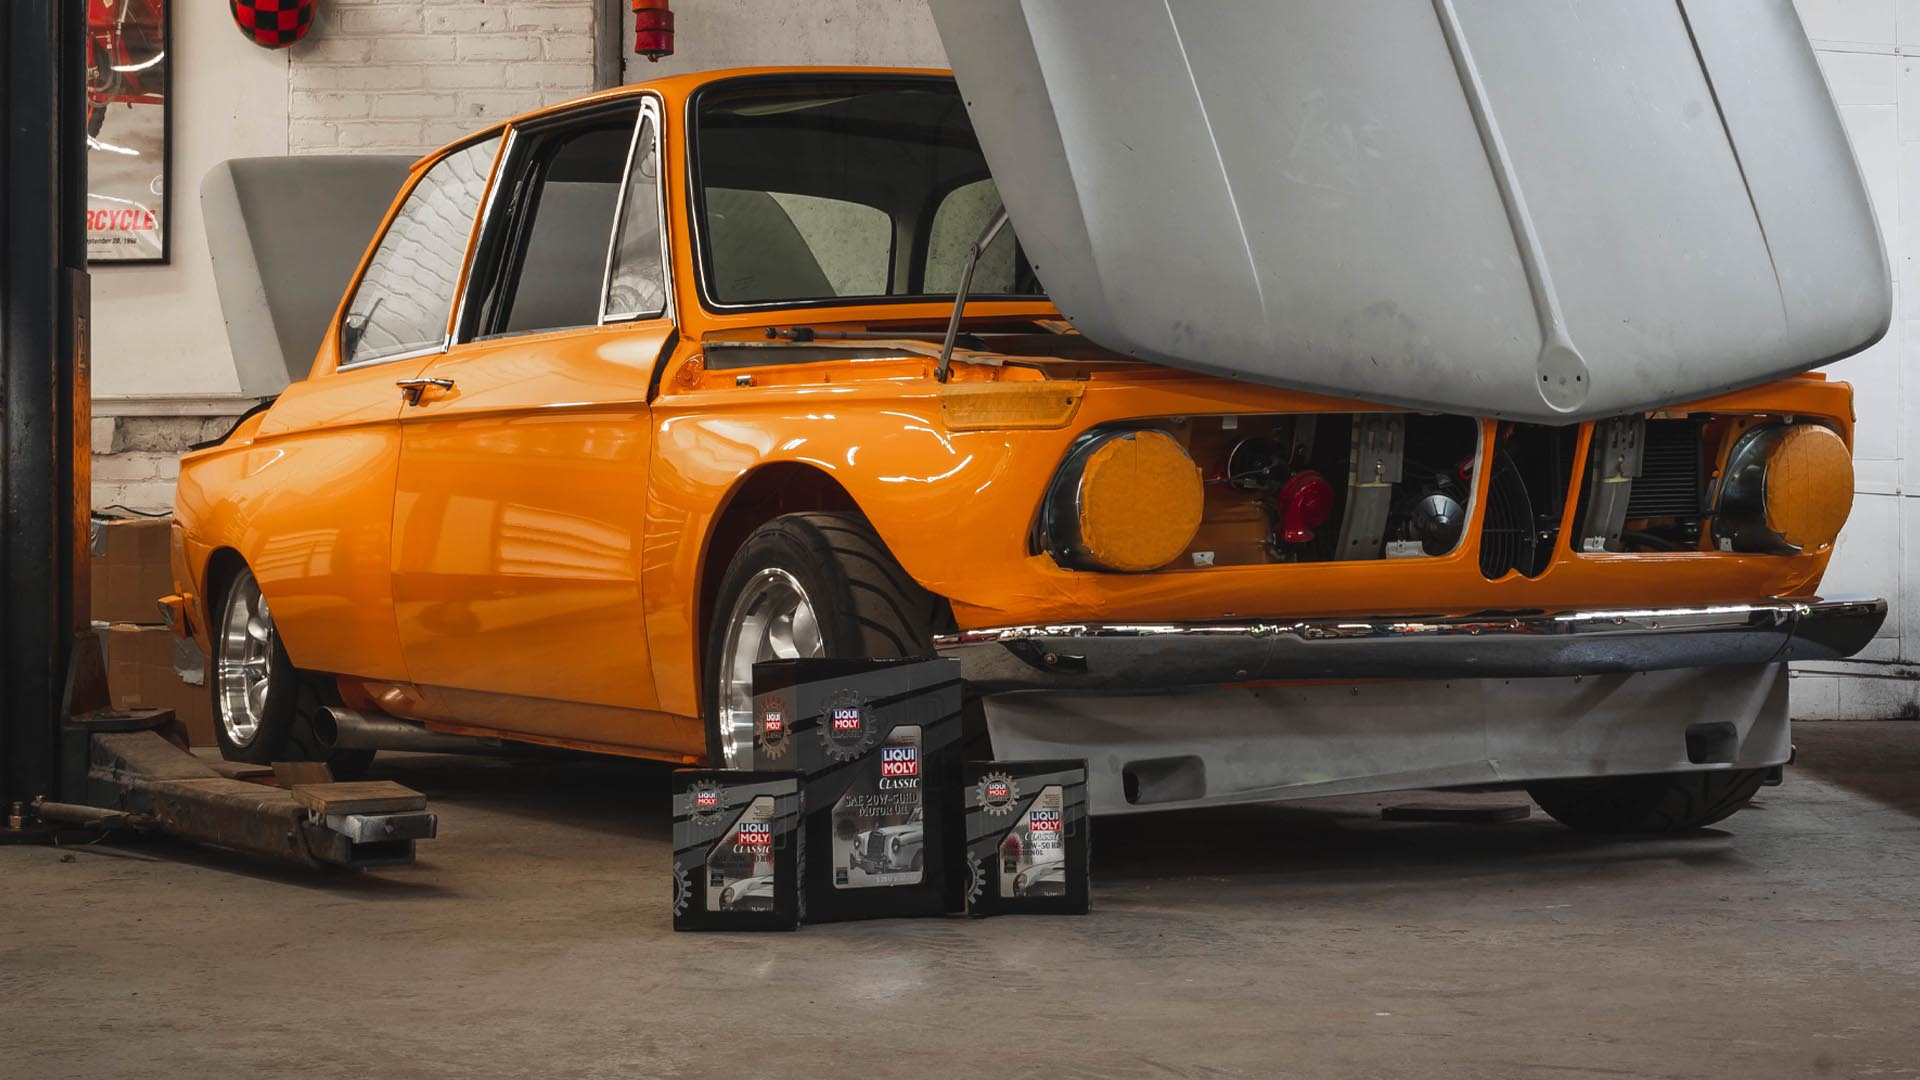 LIQUI MOLY Classic Is The Fountain Of Youth For Your Aging European Car